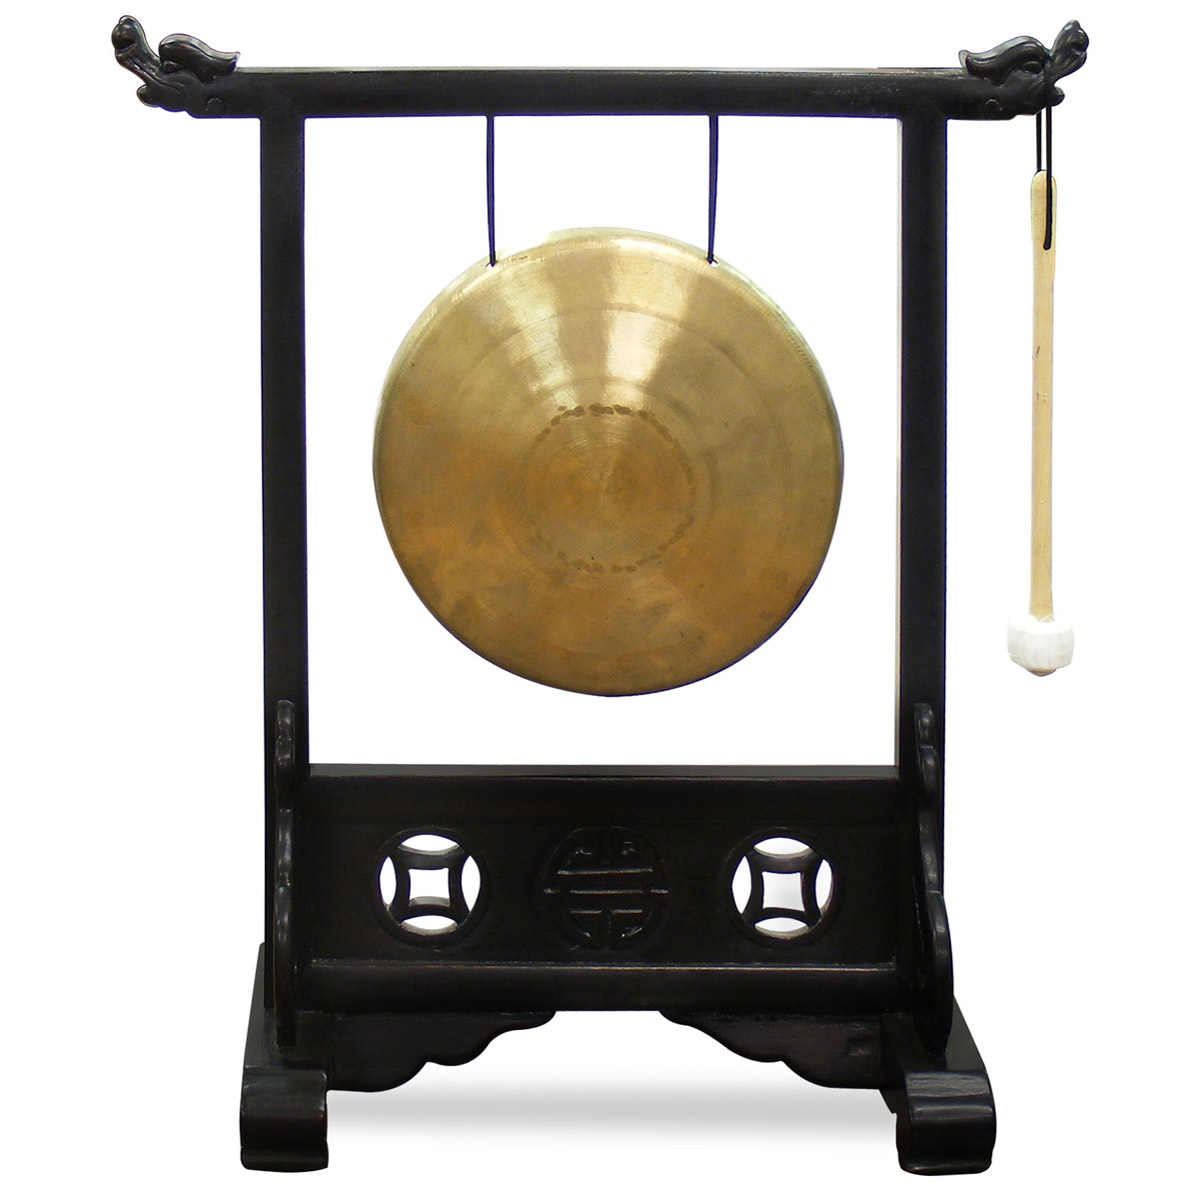 China Furniture and Arts Chinese Gong Bell with Stand